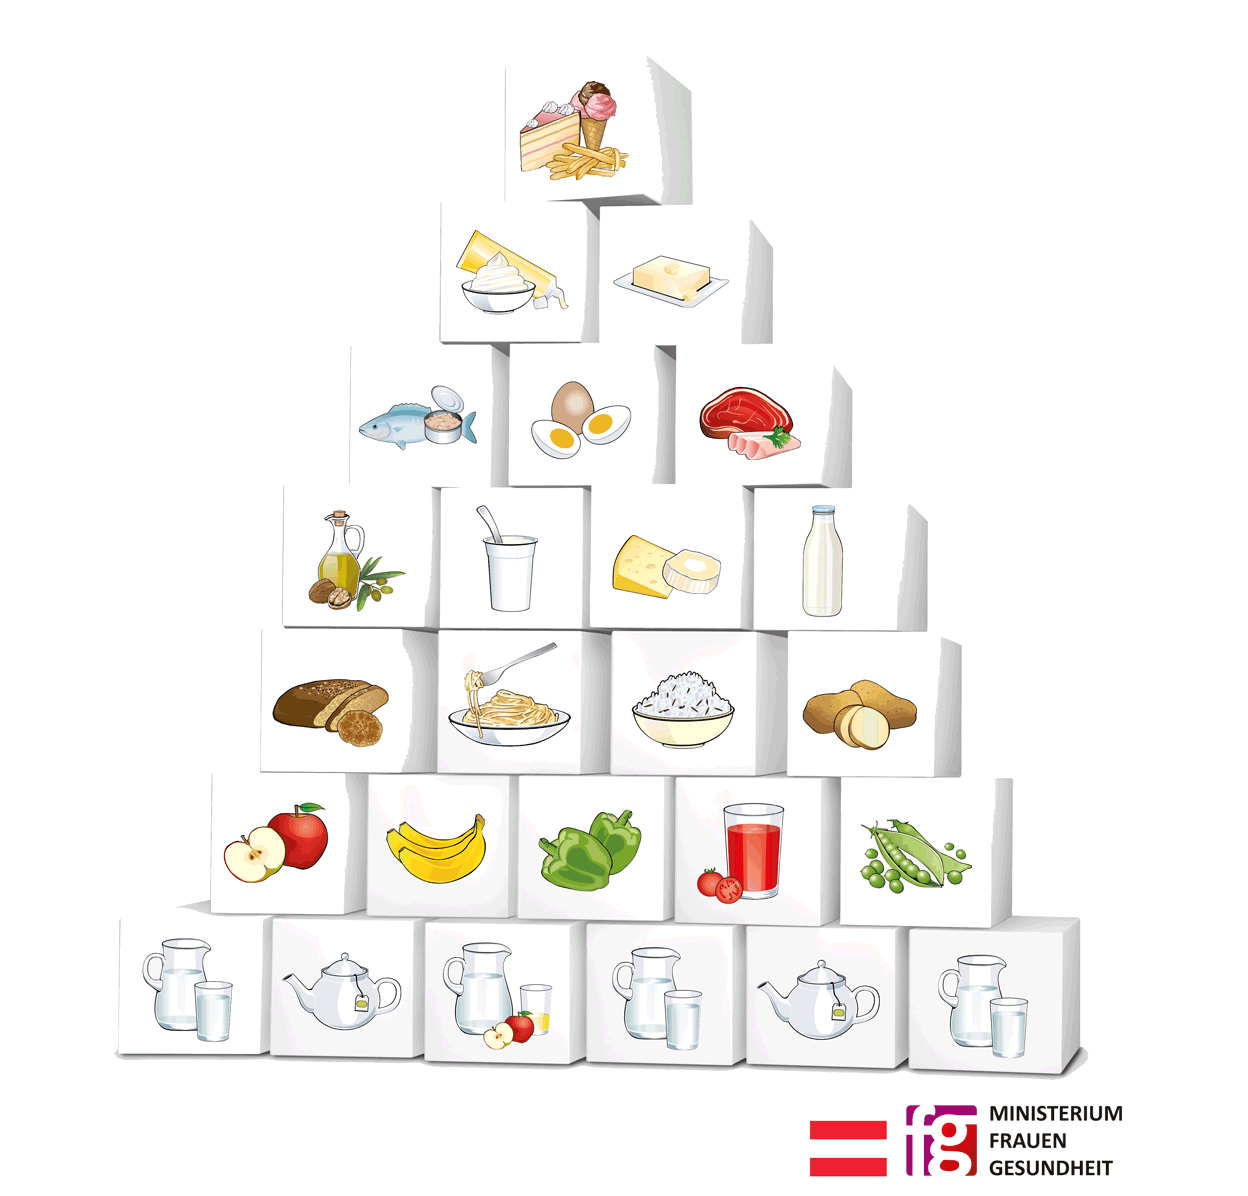 Food pyramid Austria - The food pyramid provides information on the type and quantity of food and drink that should be consumed. It is based on a block principle. The seven levels of the pyramid show how often different food groups should be eaten.